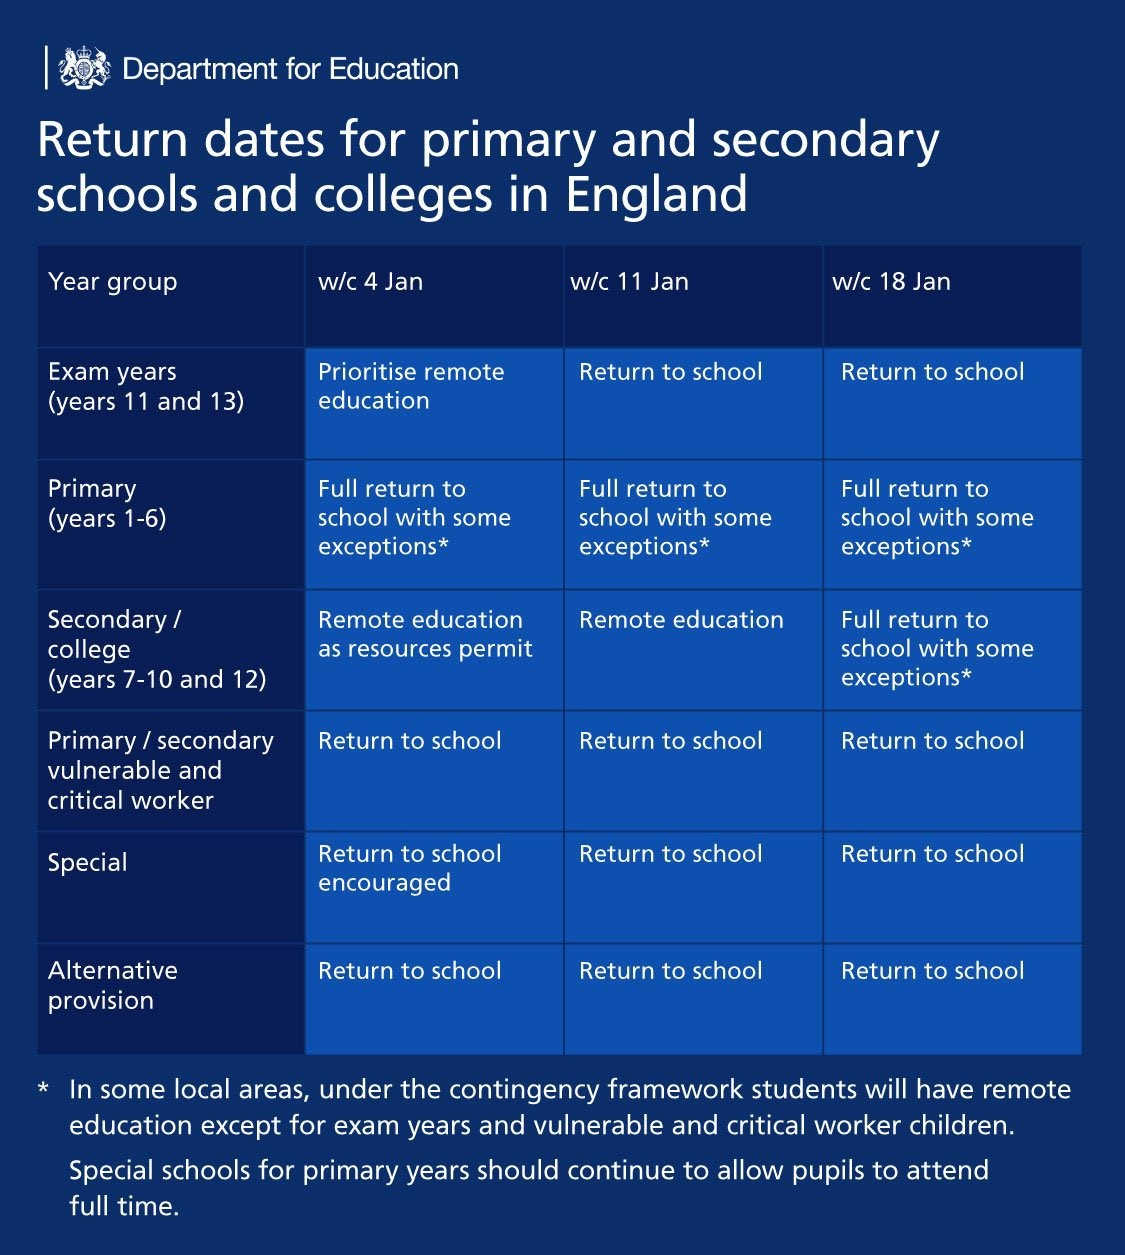 Newcastle Bridges School will Re-open on Tuesday 5th January